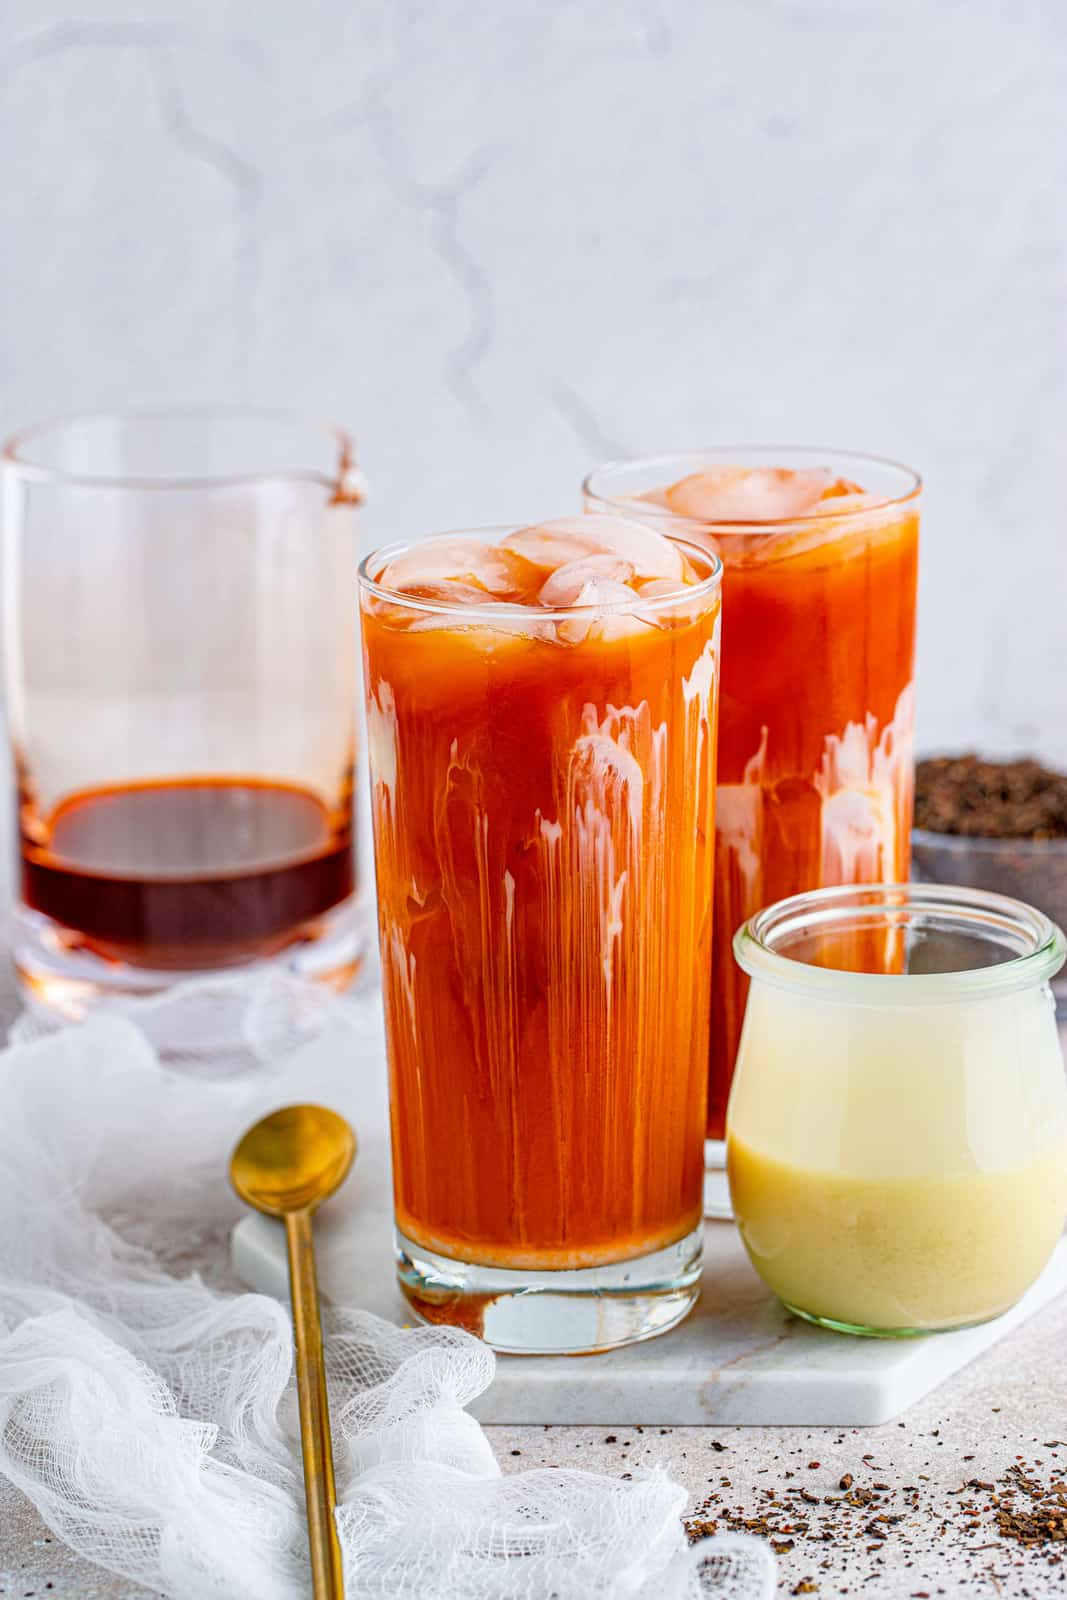 Thai Iced Tea in glasses with spoon and sweetened condensed milk